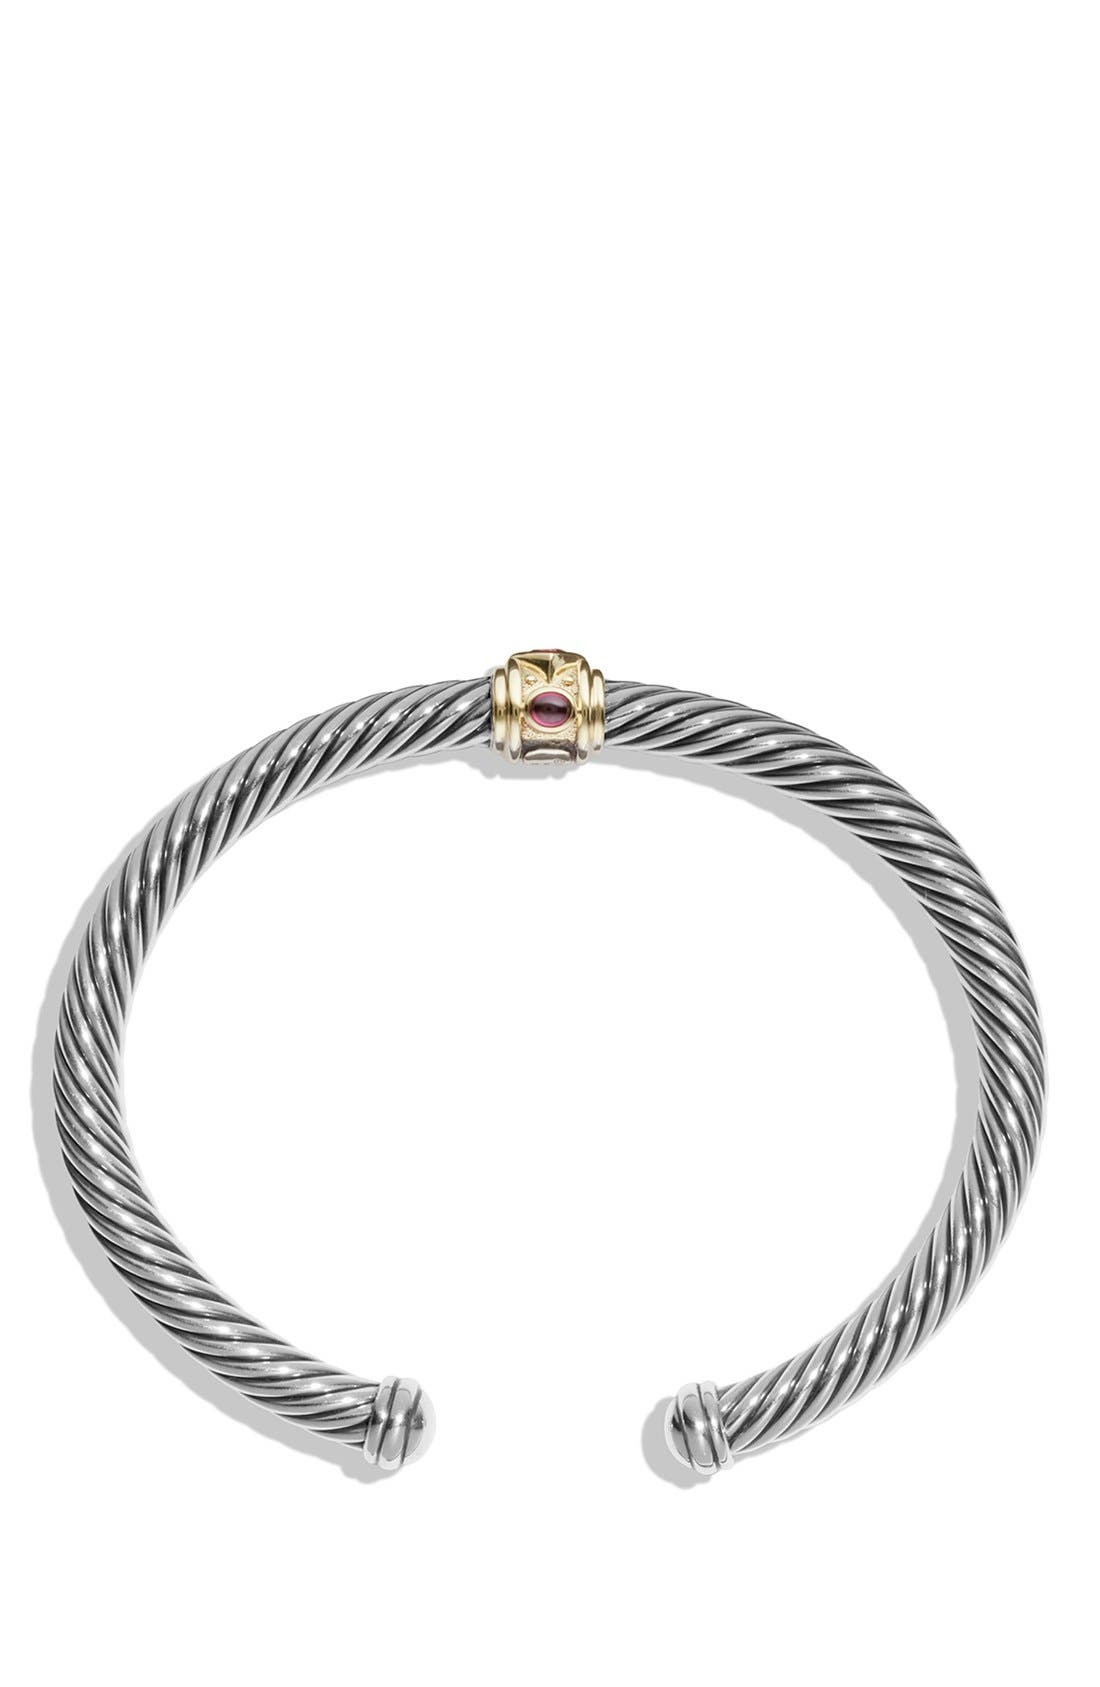 Alternate Image 2  - David Yurman 'Renaissance' Bracelet with Semiprecious Stone and 14K Gold